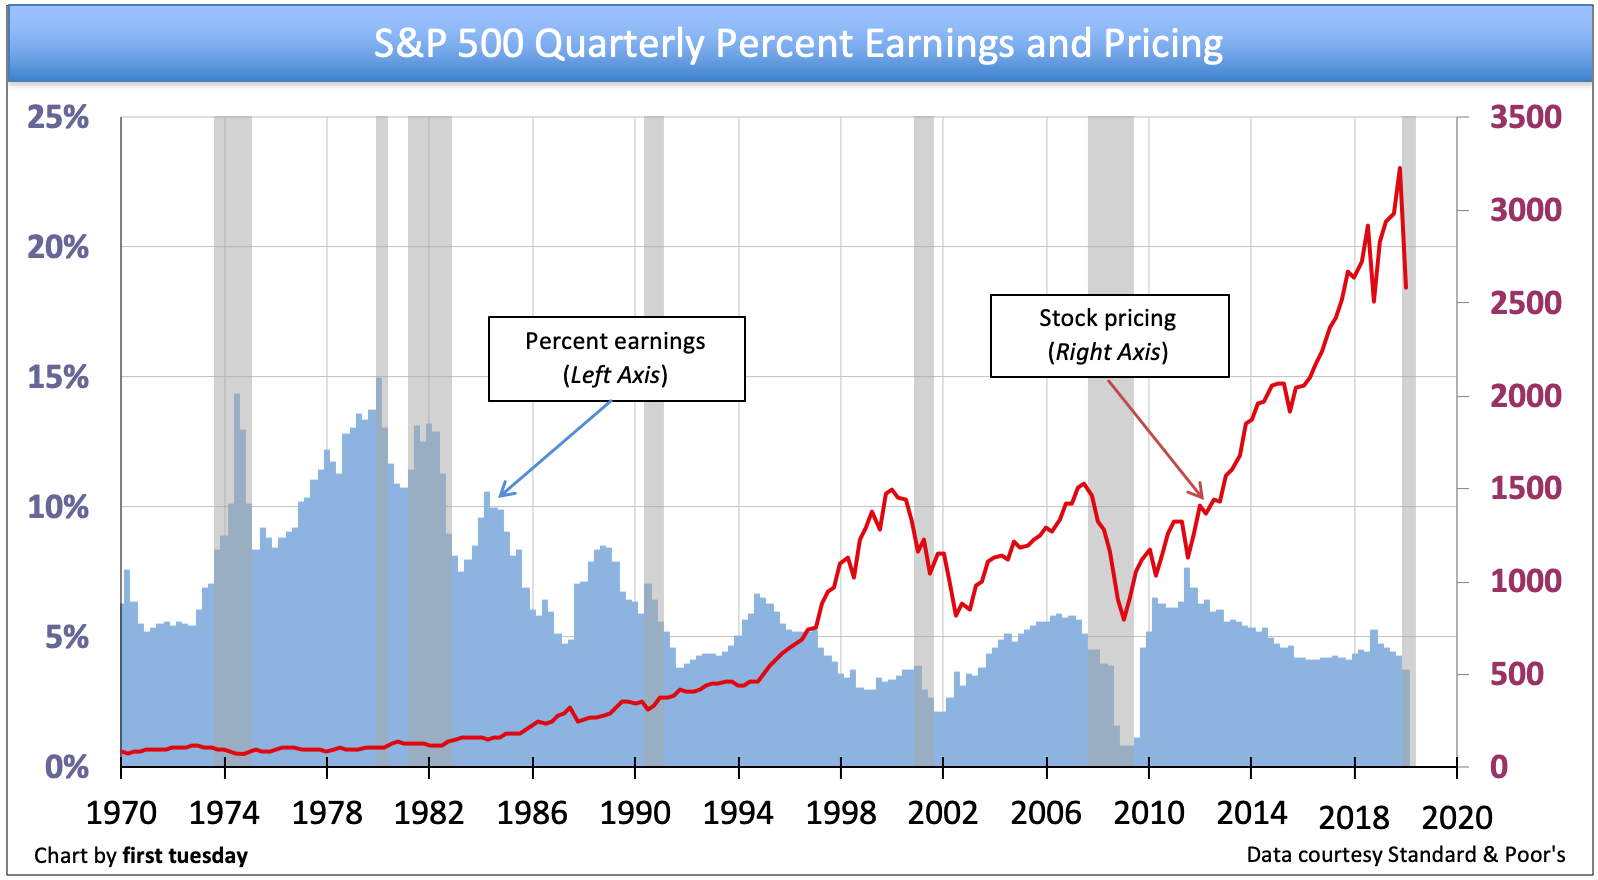 S P 500 Stock Pricing Vs Earnings P E Ratio First Tuesday Journal